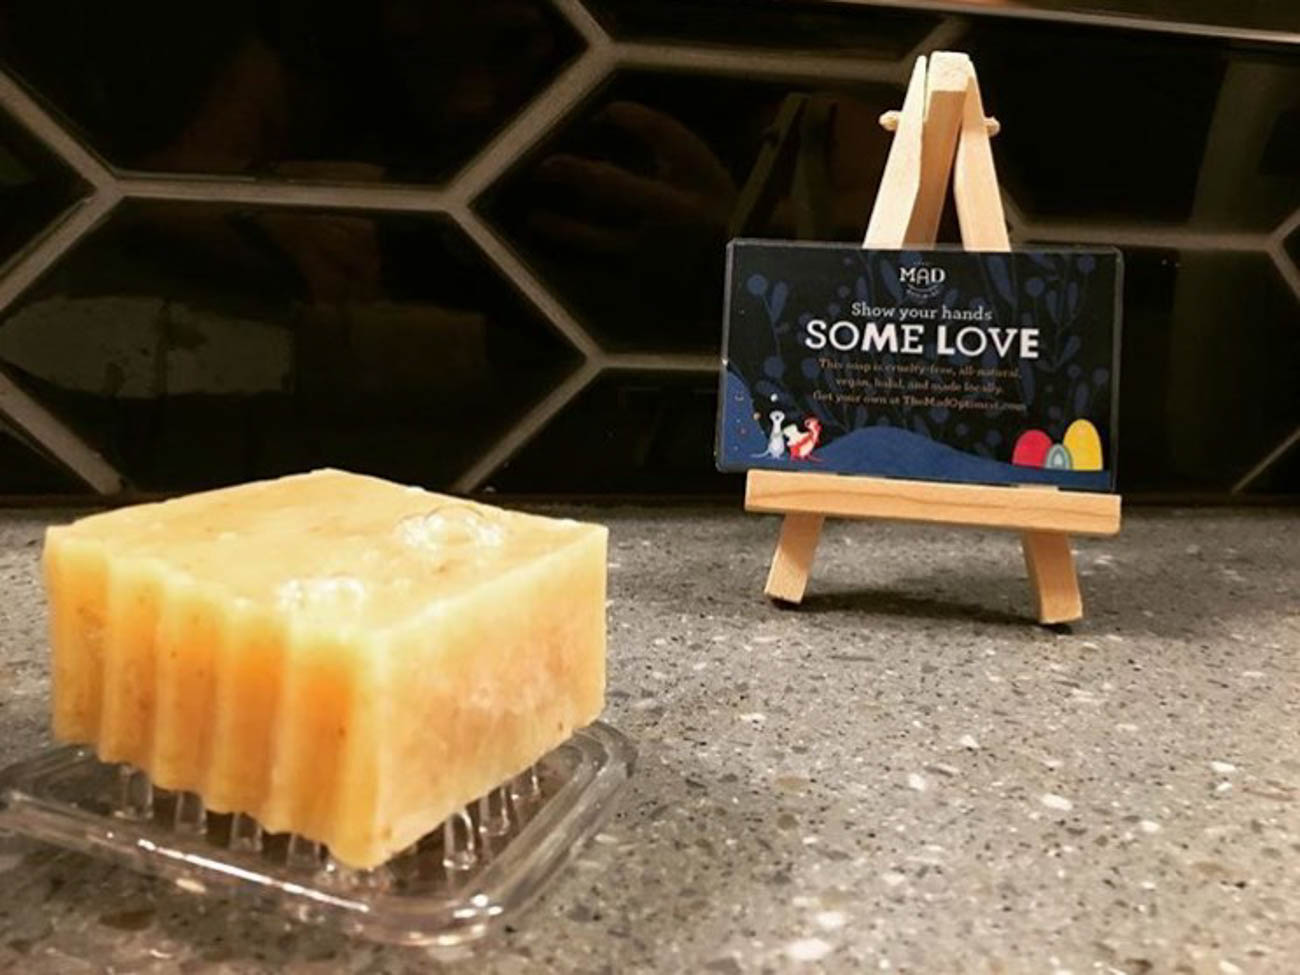 Mad Optimist's soap is safe to use right after it's made rather than taking 30-60 days to cure like other natural soaps. / Image courtesy of The Mad Optimist // Published: 4.18.20